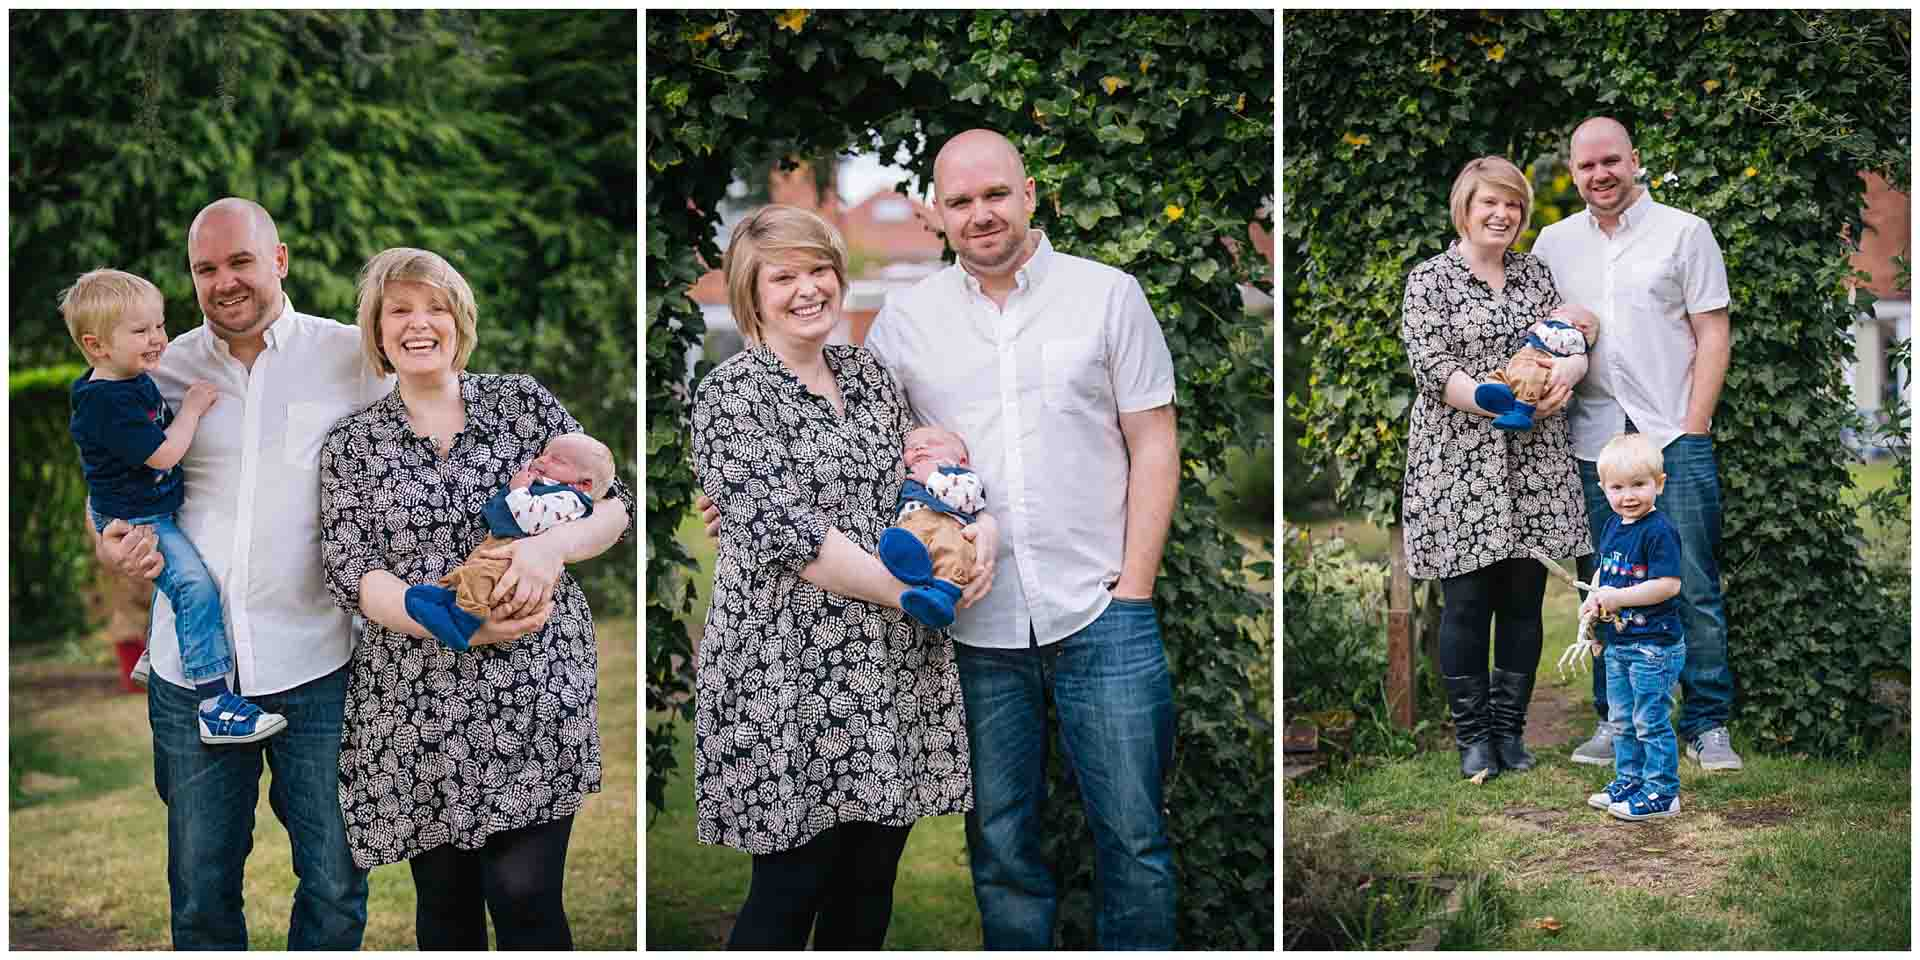 Joanna Eardley Family Portrait Photographer